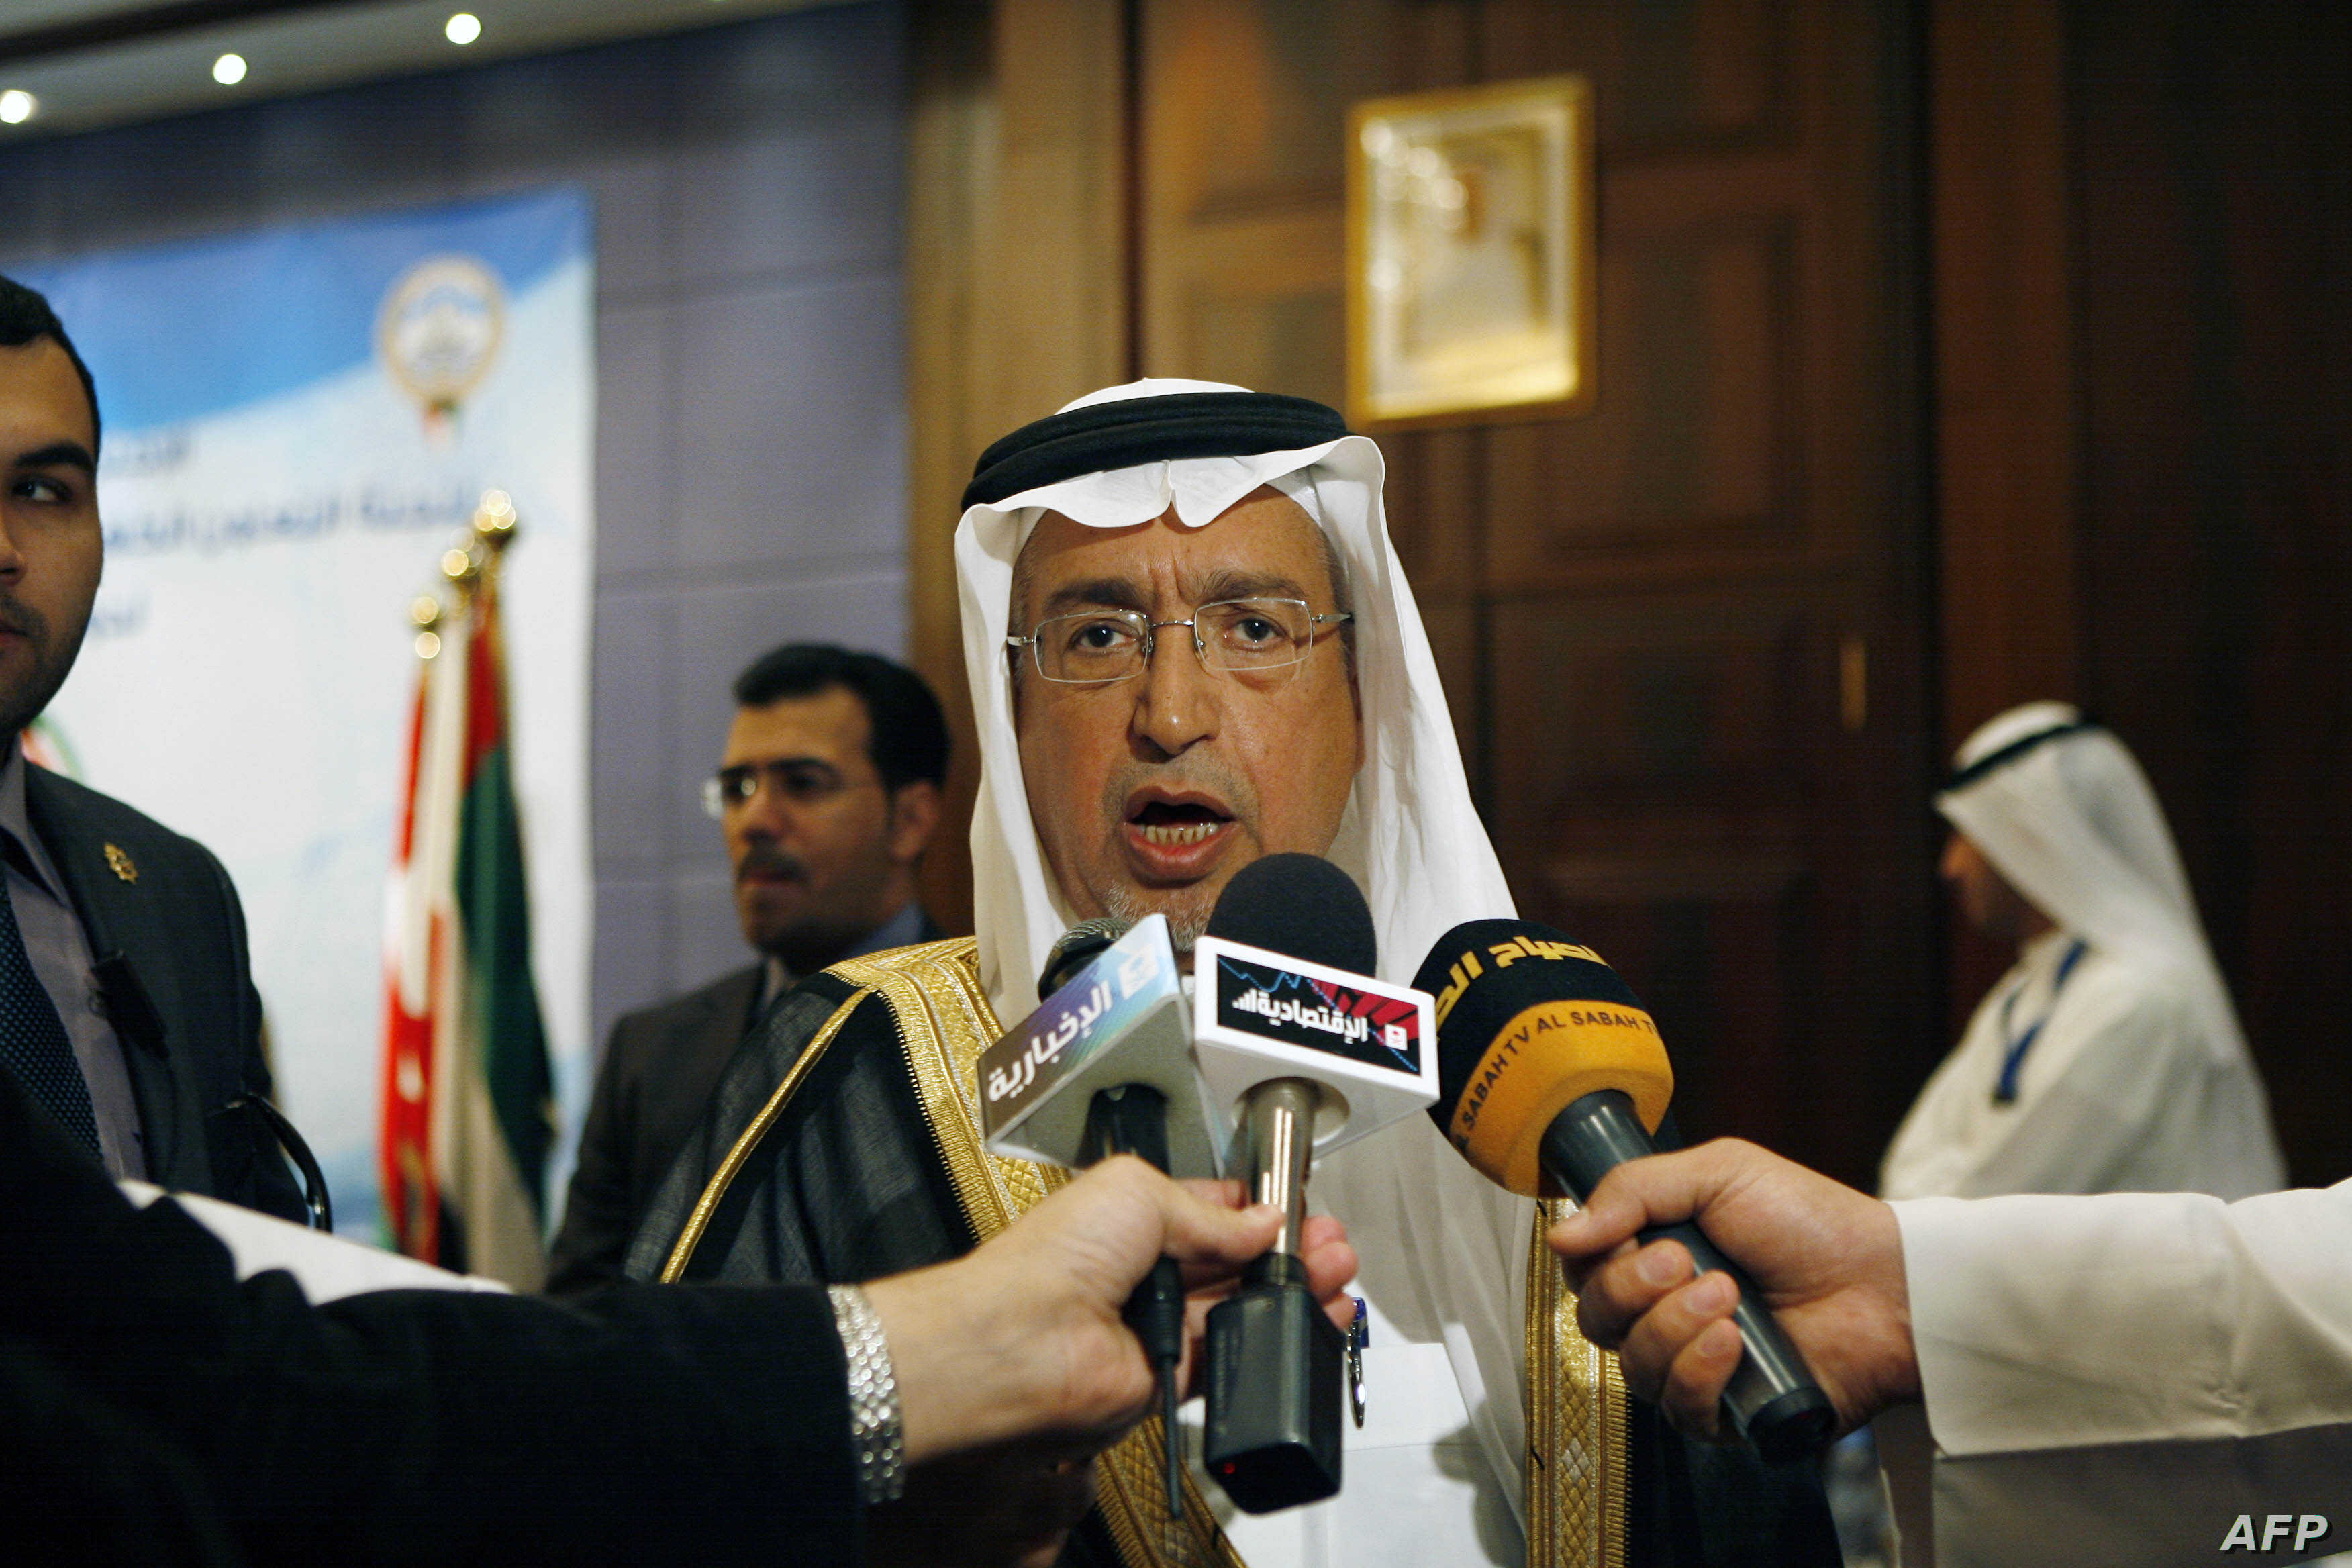 FILE - This file photo taken on Nov. 30, 2010 shows Saudi Arabia's Minister of Electricity and Water Abdullah al-Hussayen speaking to the press in Kuwait City.